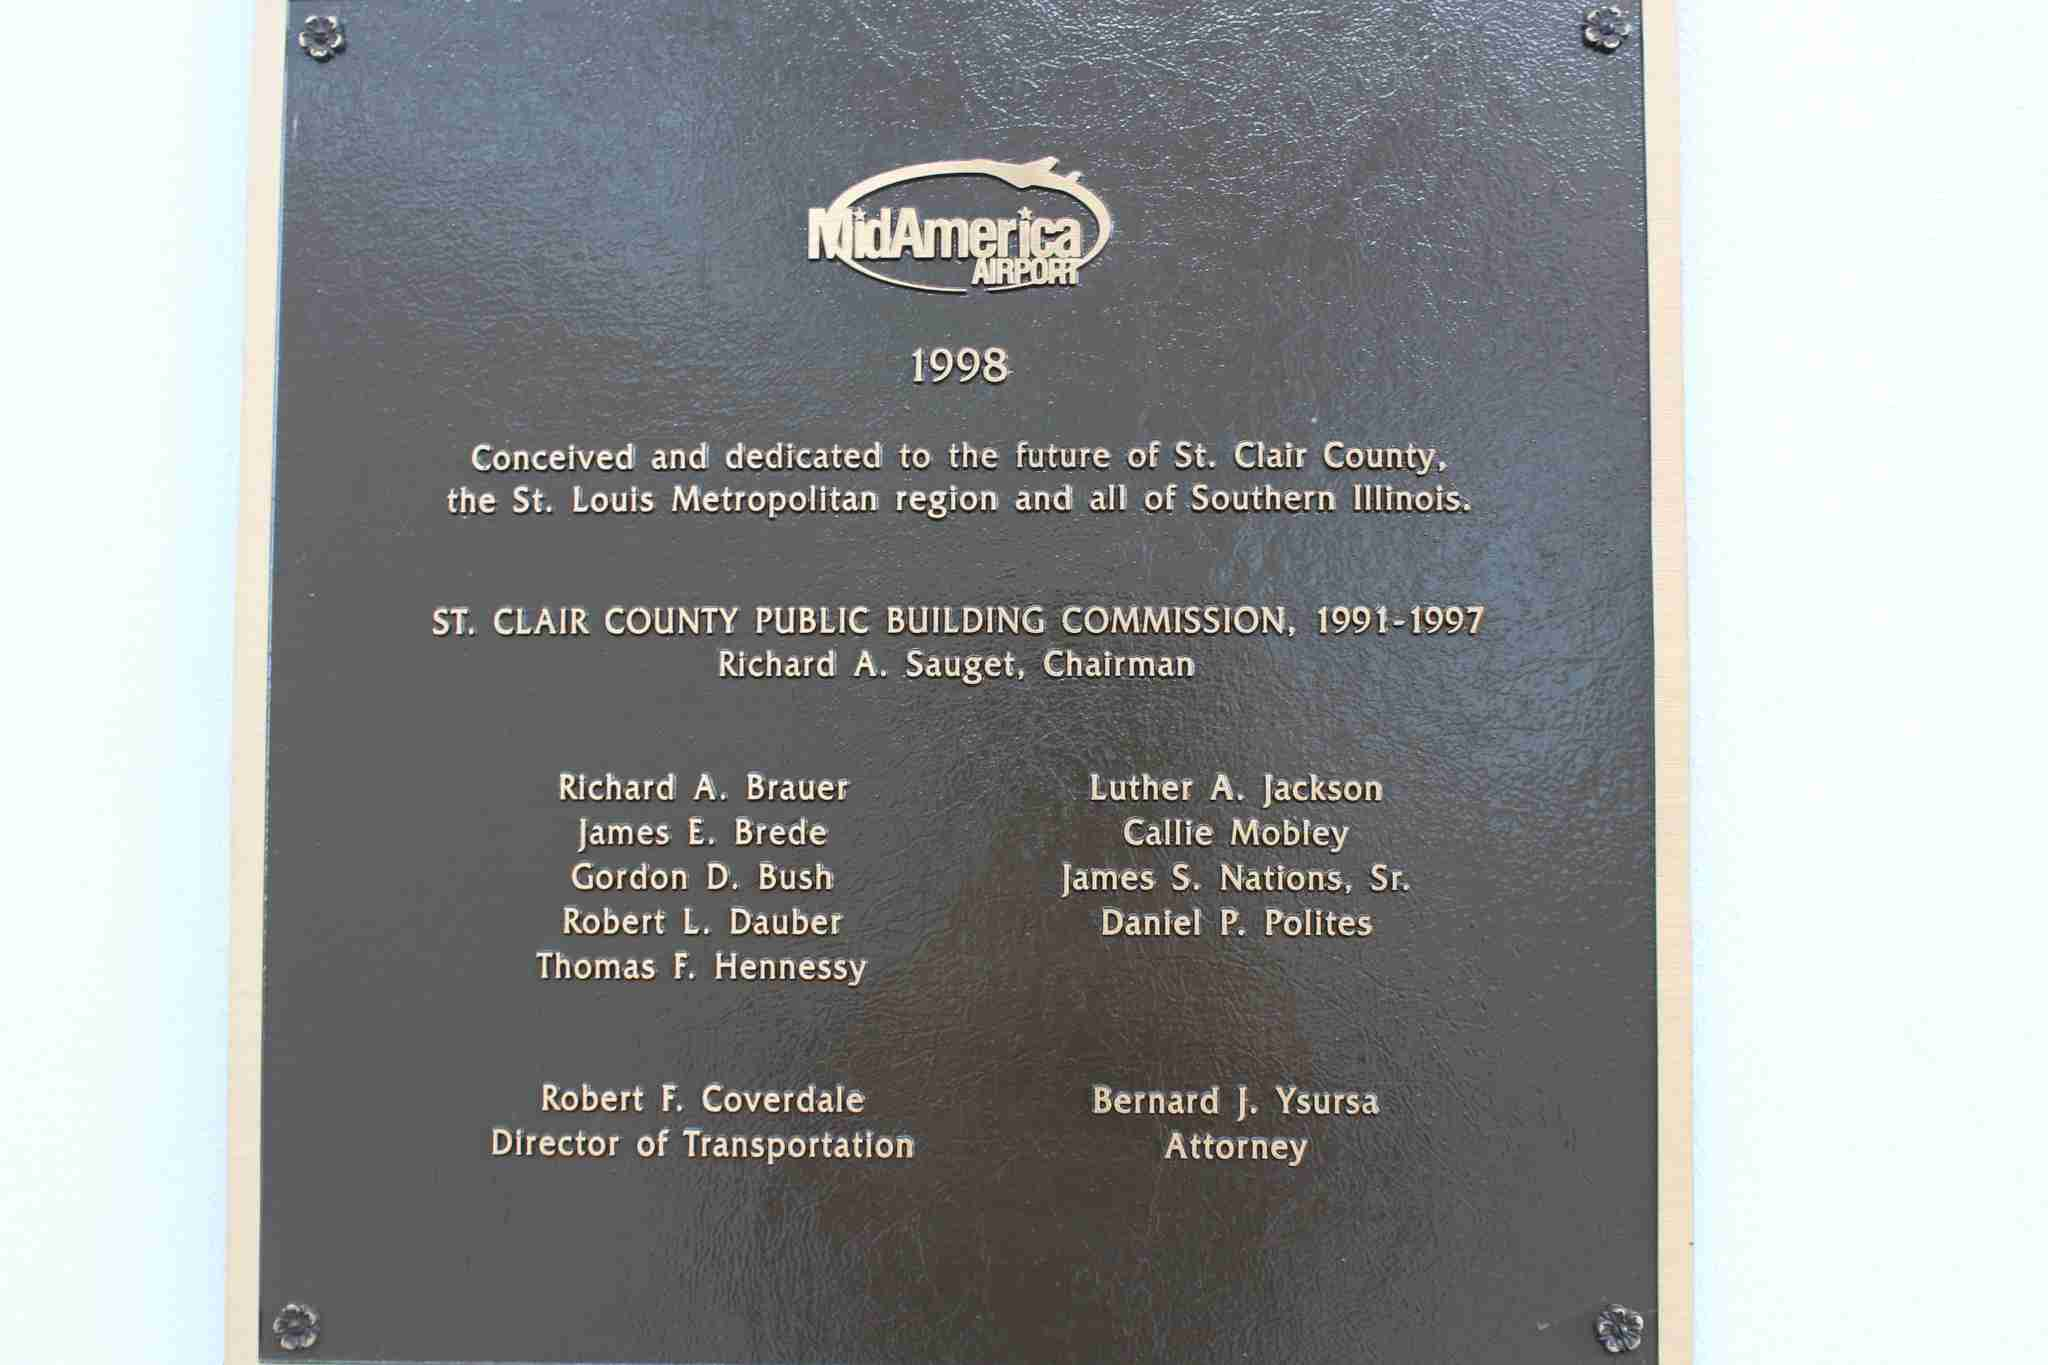 One of the two plaques that hangs in the passenger terminal at MidAmerica Airport which dedicated in 1998. (Image by Max Prosperi/The Points Guy)